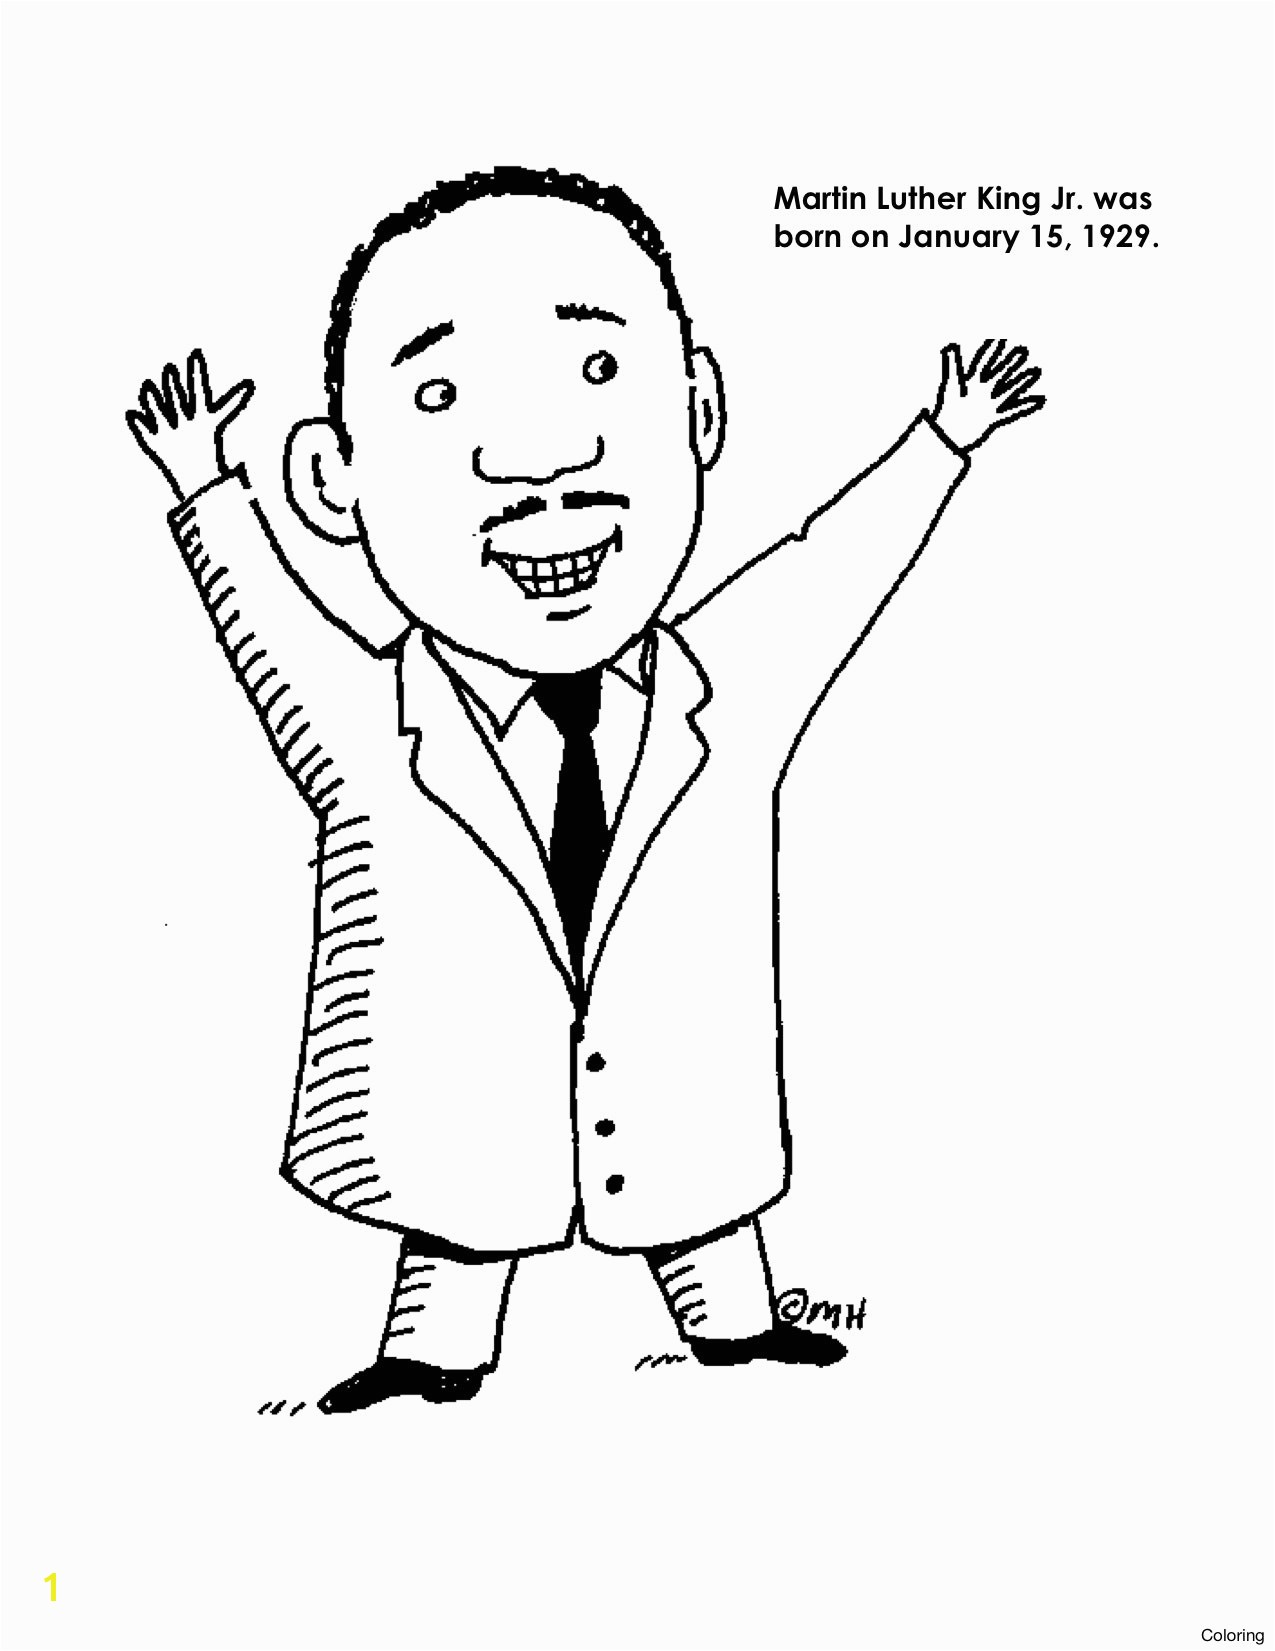 Awesome martin luther king jr coloring sheet Collection 3i 1275x1651 Mlk Today Martin Luther King